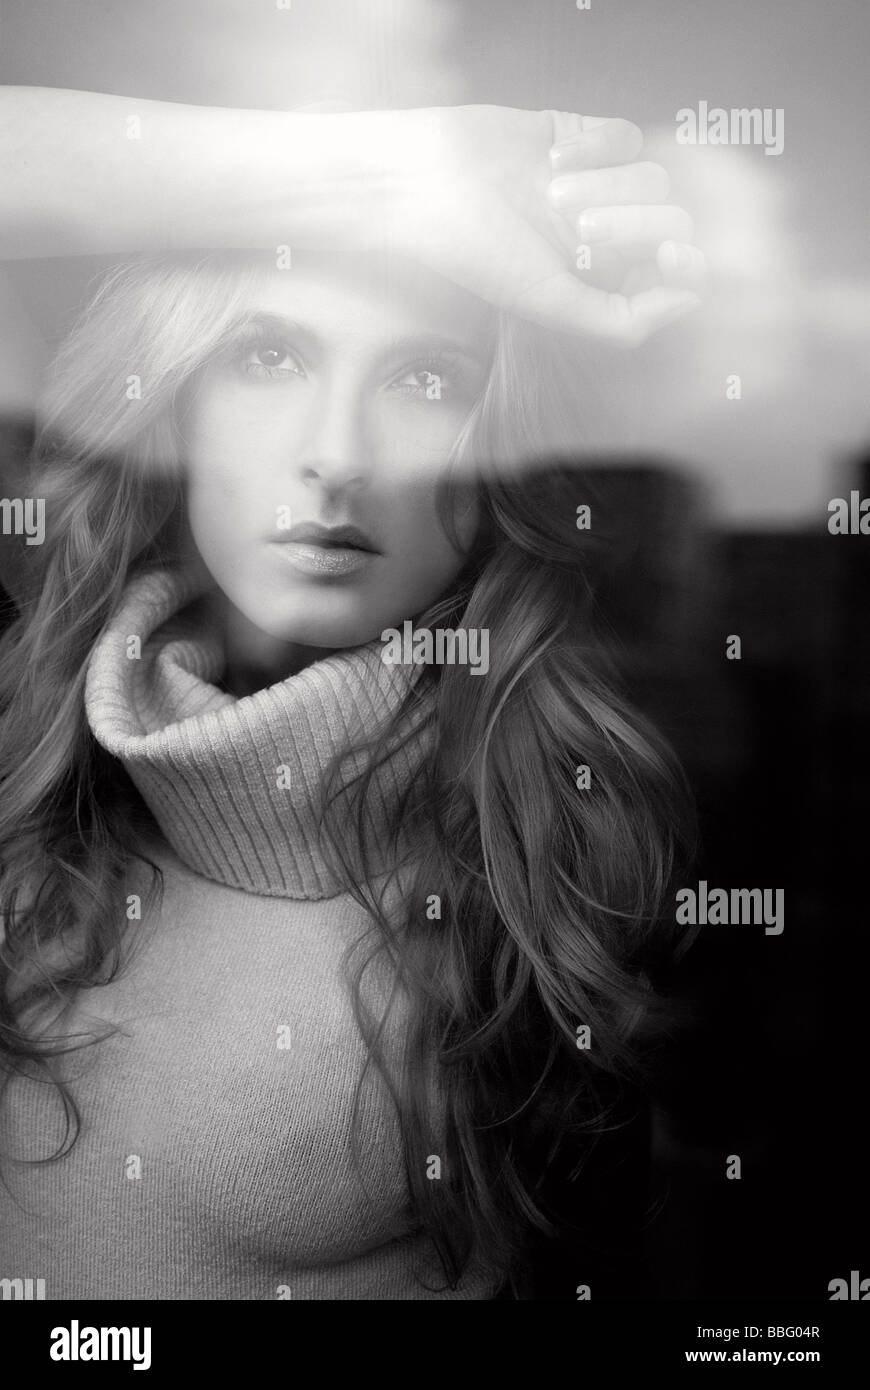 1253640 people one woman model 25 30 adult brunette long haired black white hand head window glass reflection portrait - Stock Image